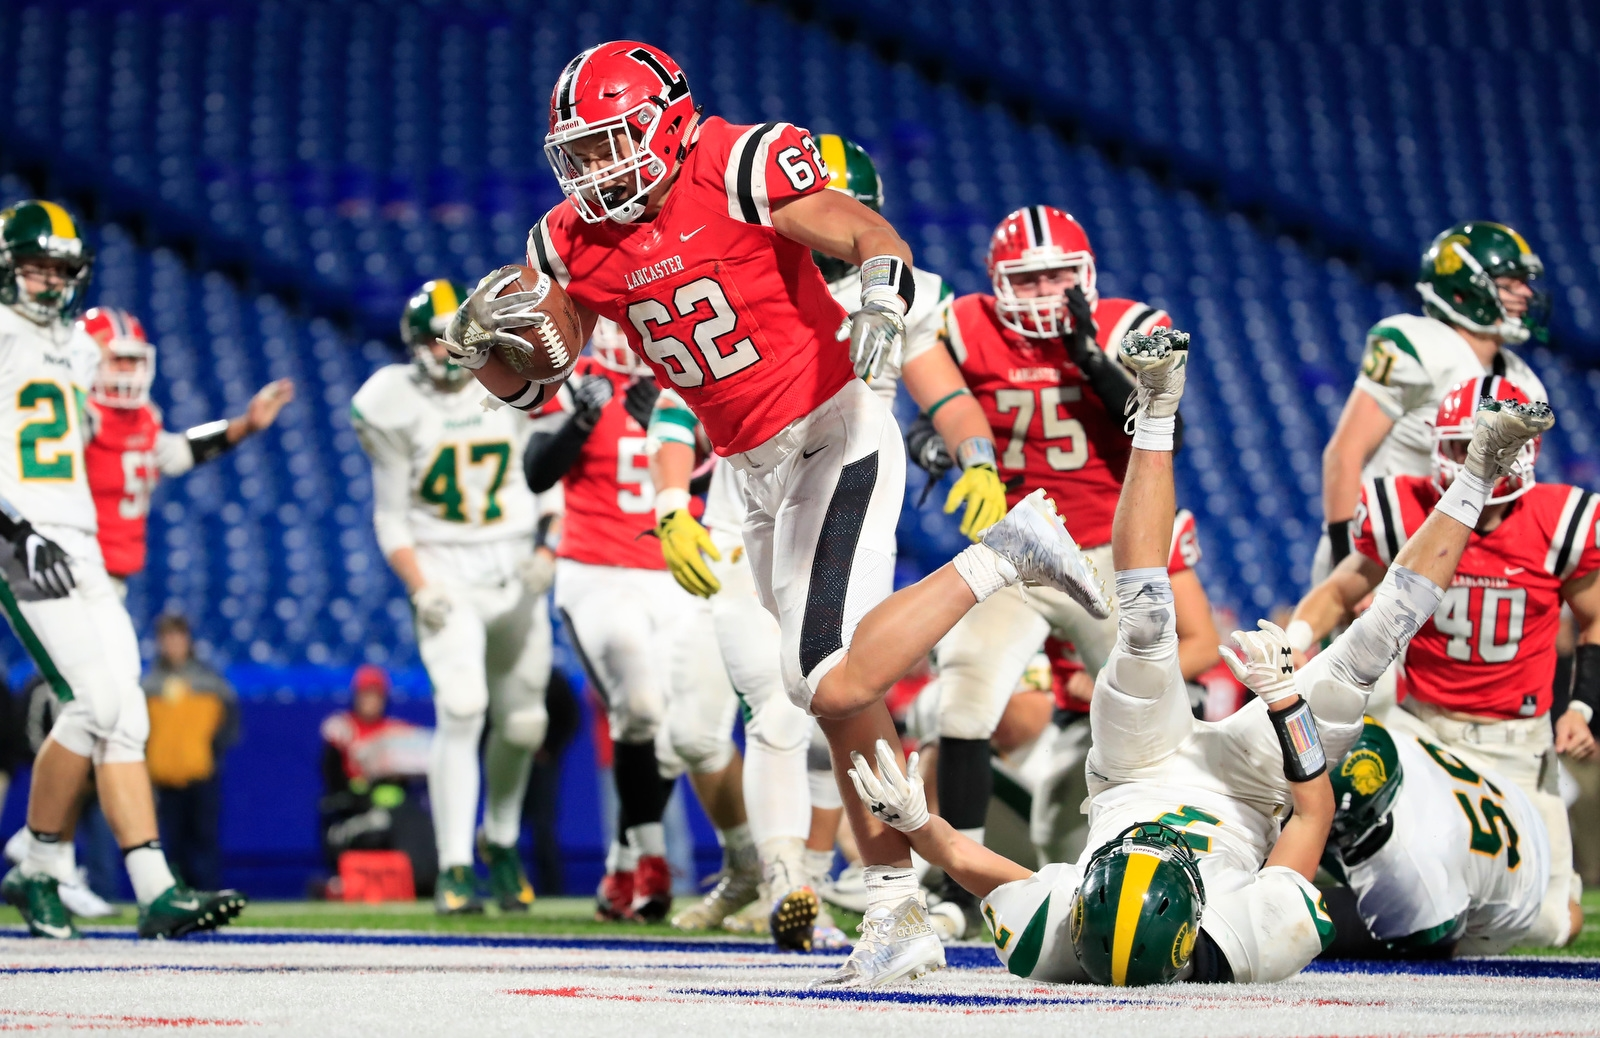 Lancaster running back Joseph Andreessen scores against Williamsville North during the first half of the Section VI Class AA Championships at New Era Field on Friday, Nov. 3, 2017.